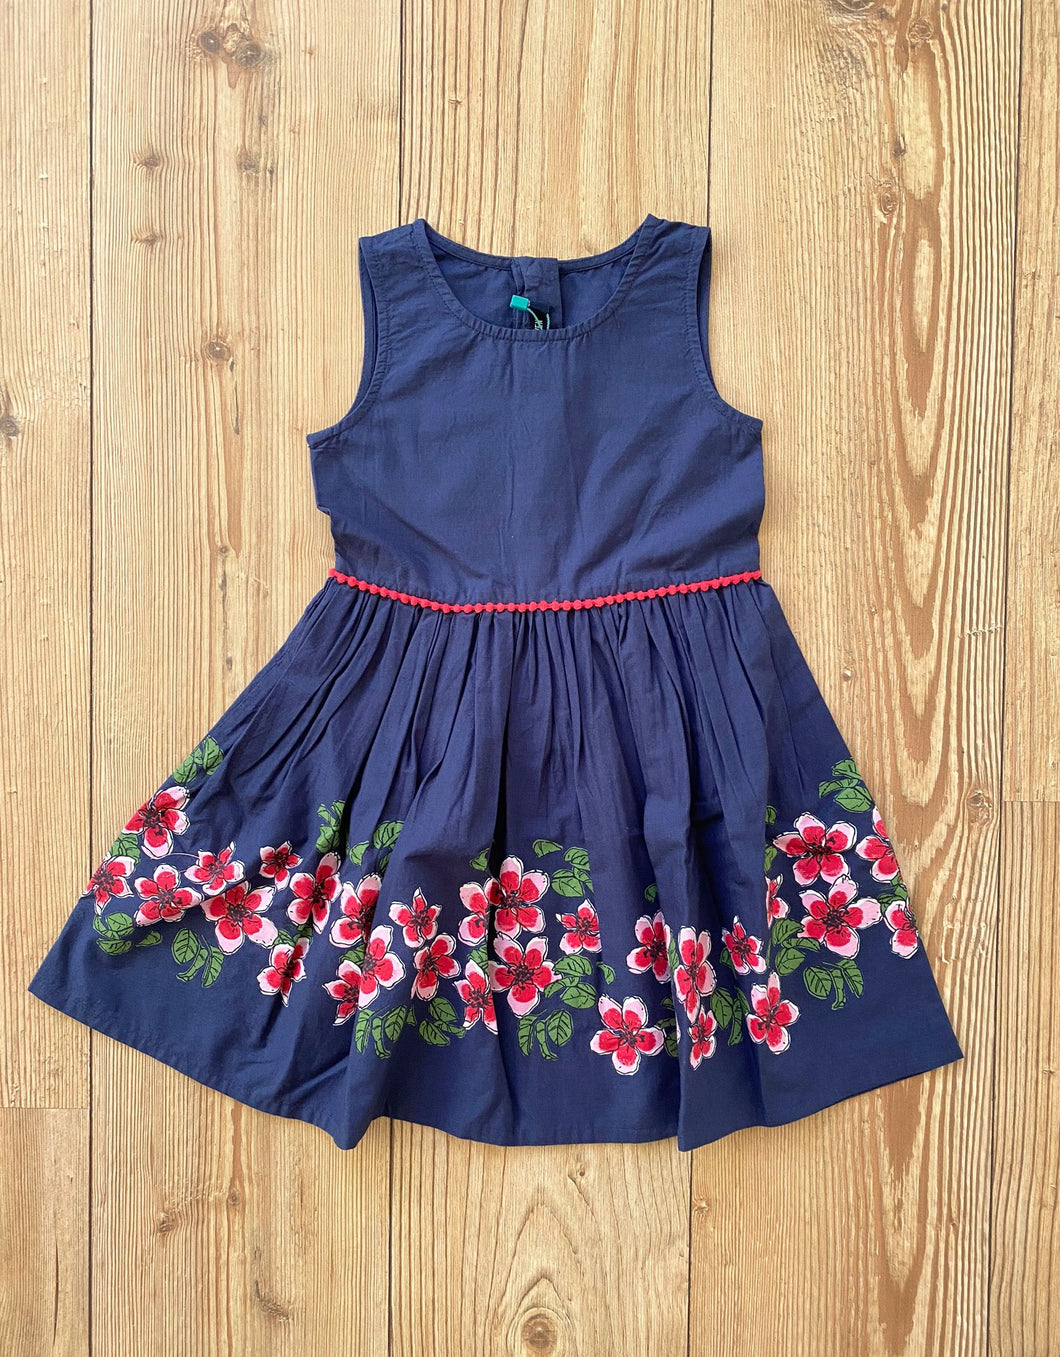 Kids/Girls-Kleid Blumenprint